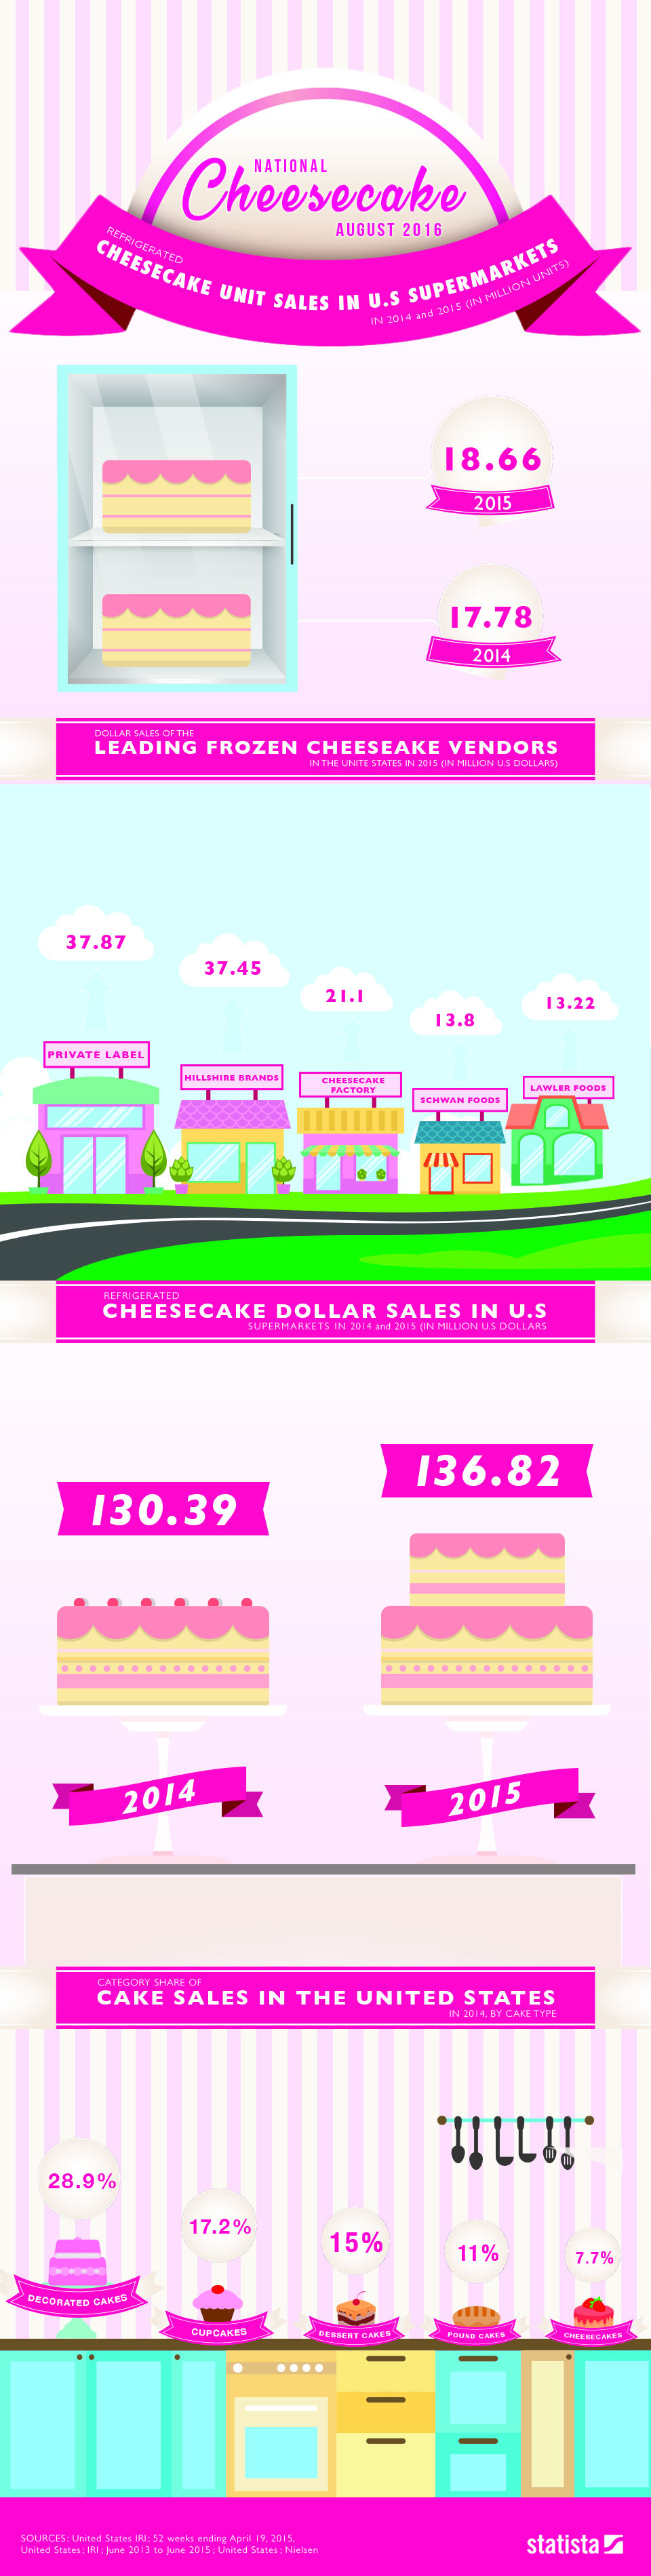 National Cheesecake Day - This Giant Infographic was created for a company called Statista Inc. Visually showcasing specific statistics they have in there database for National Cheesecake Day.